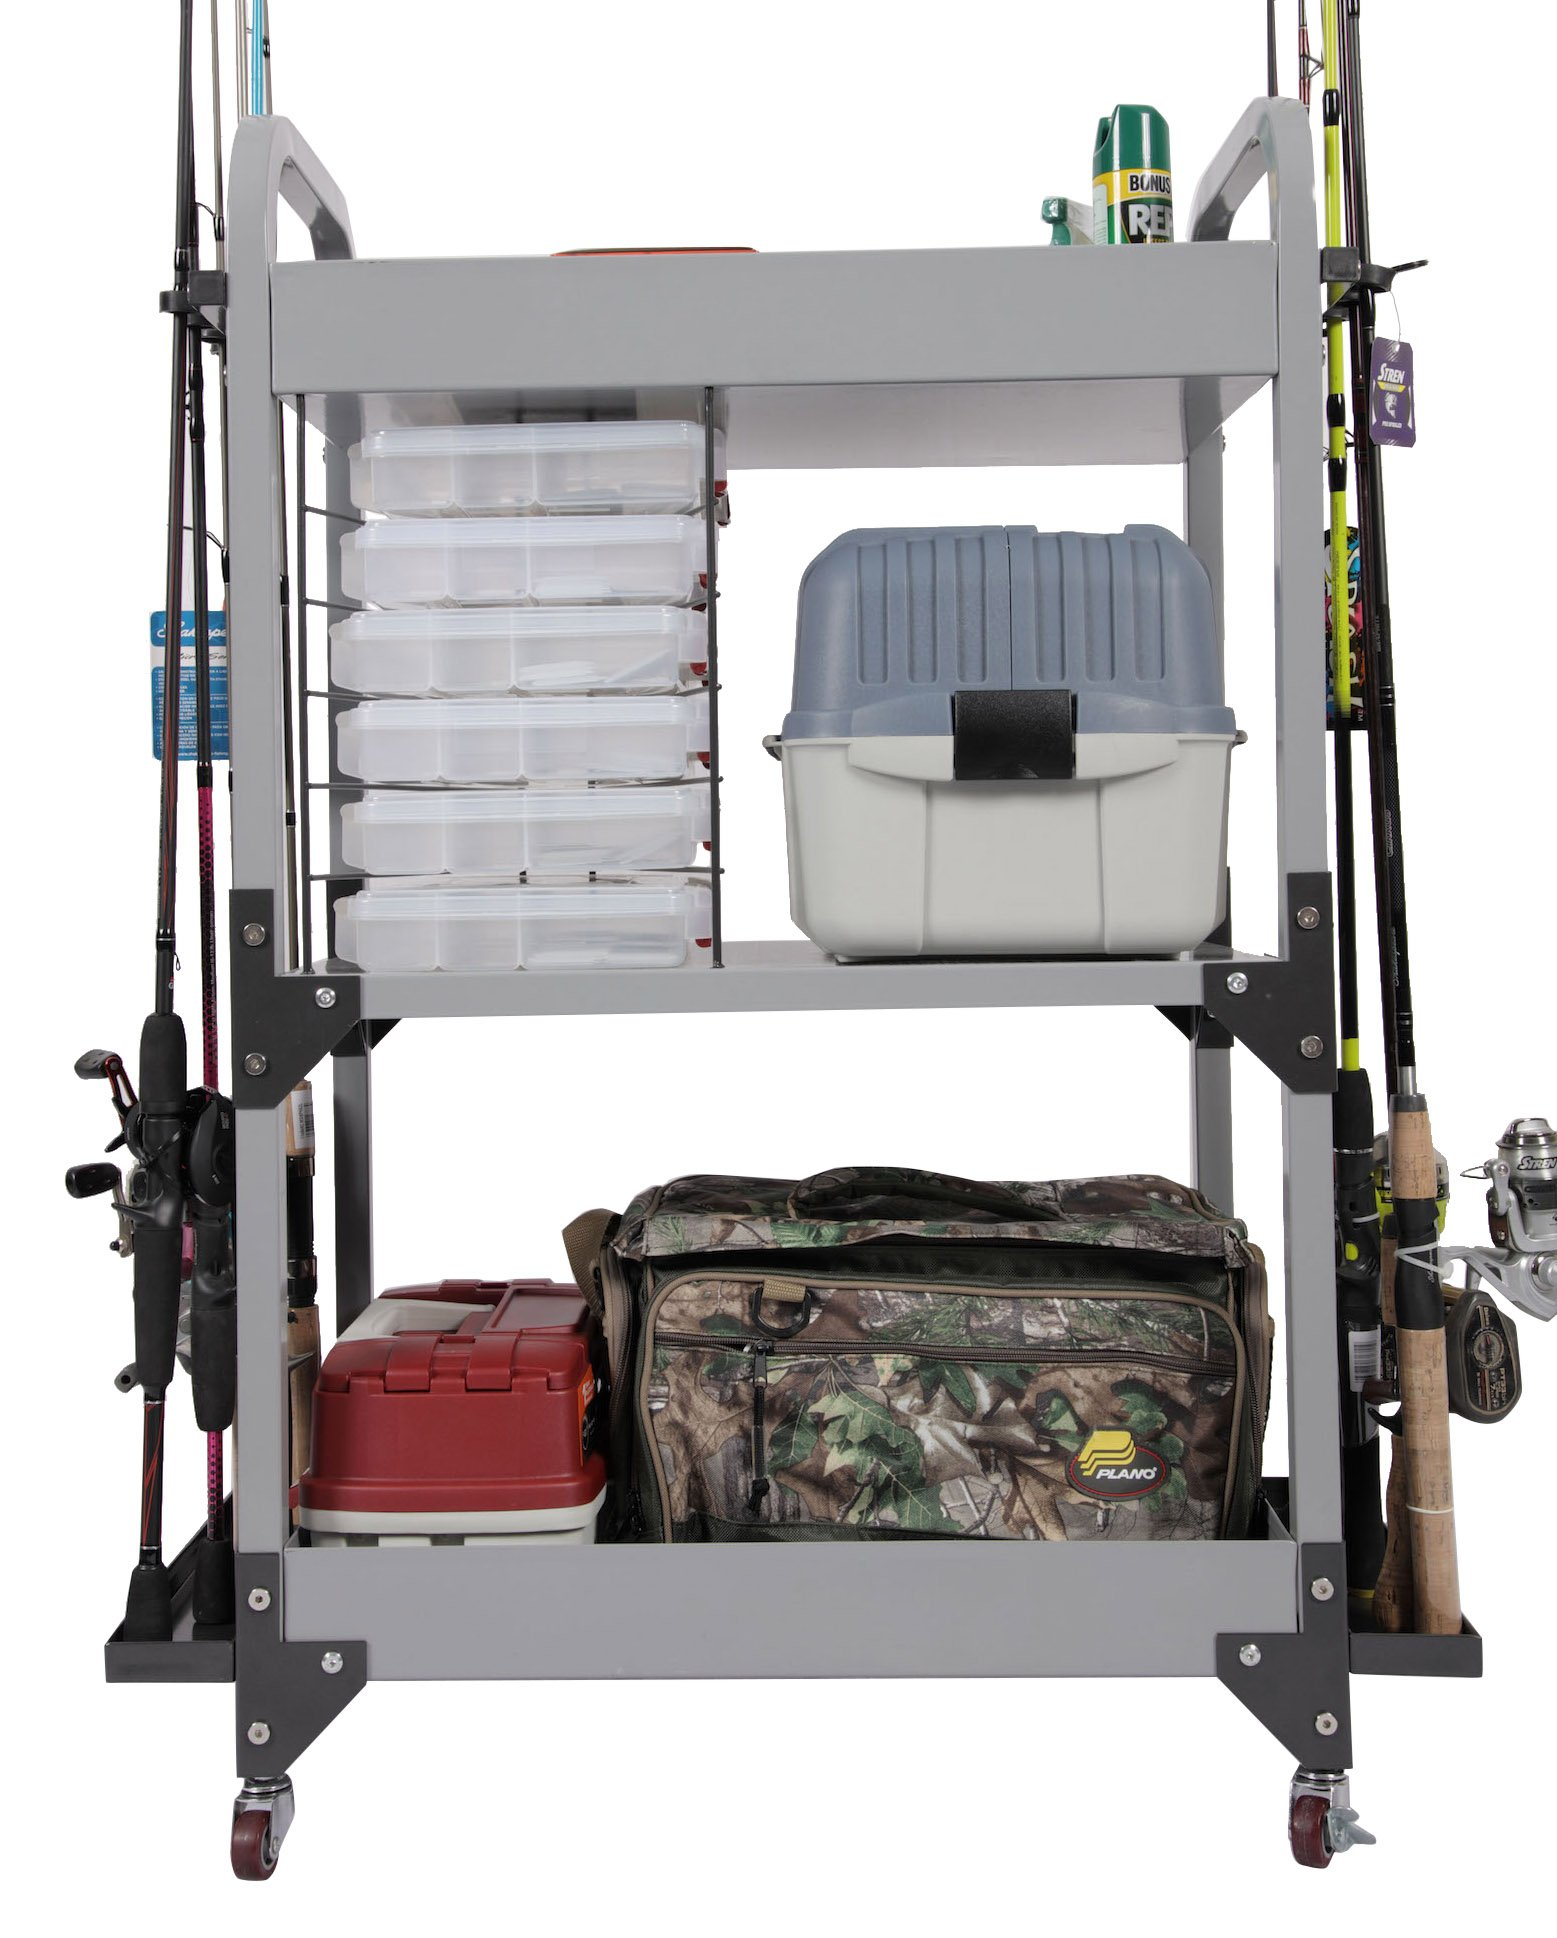 American Furniture Classics 751 model Fishing Storage Cart Metal Fishing Storage Cabinet, Gray Powder-Coated Steel